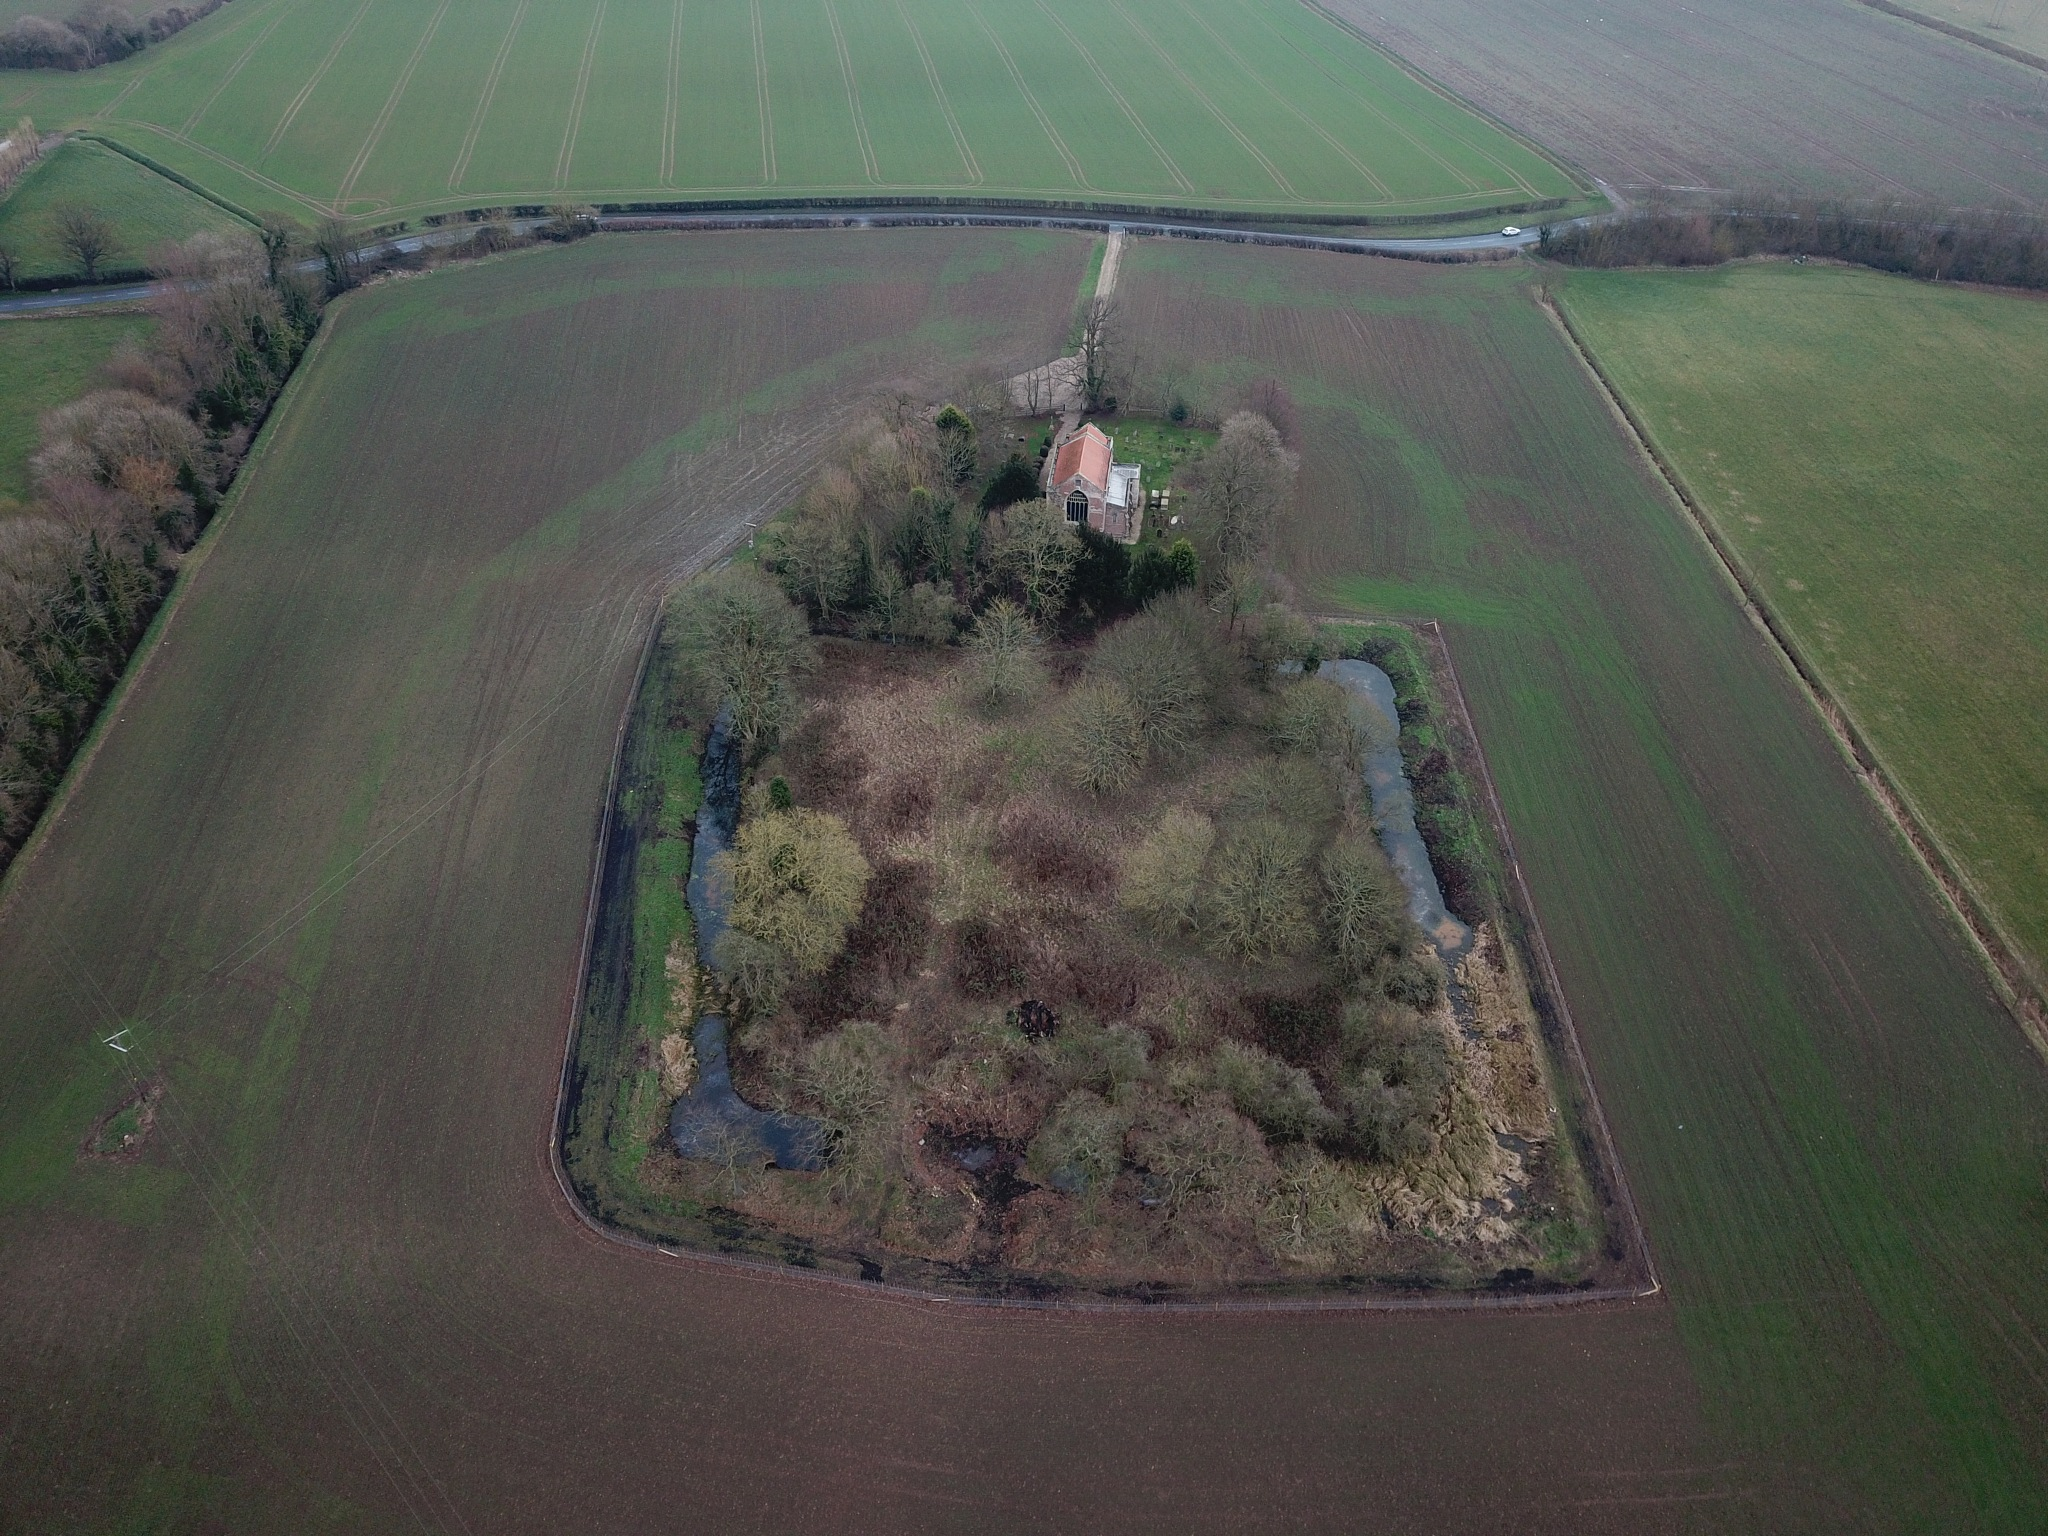 Winestead church and moated site by alijhawkins